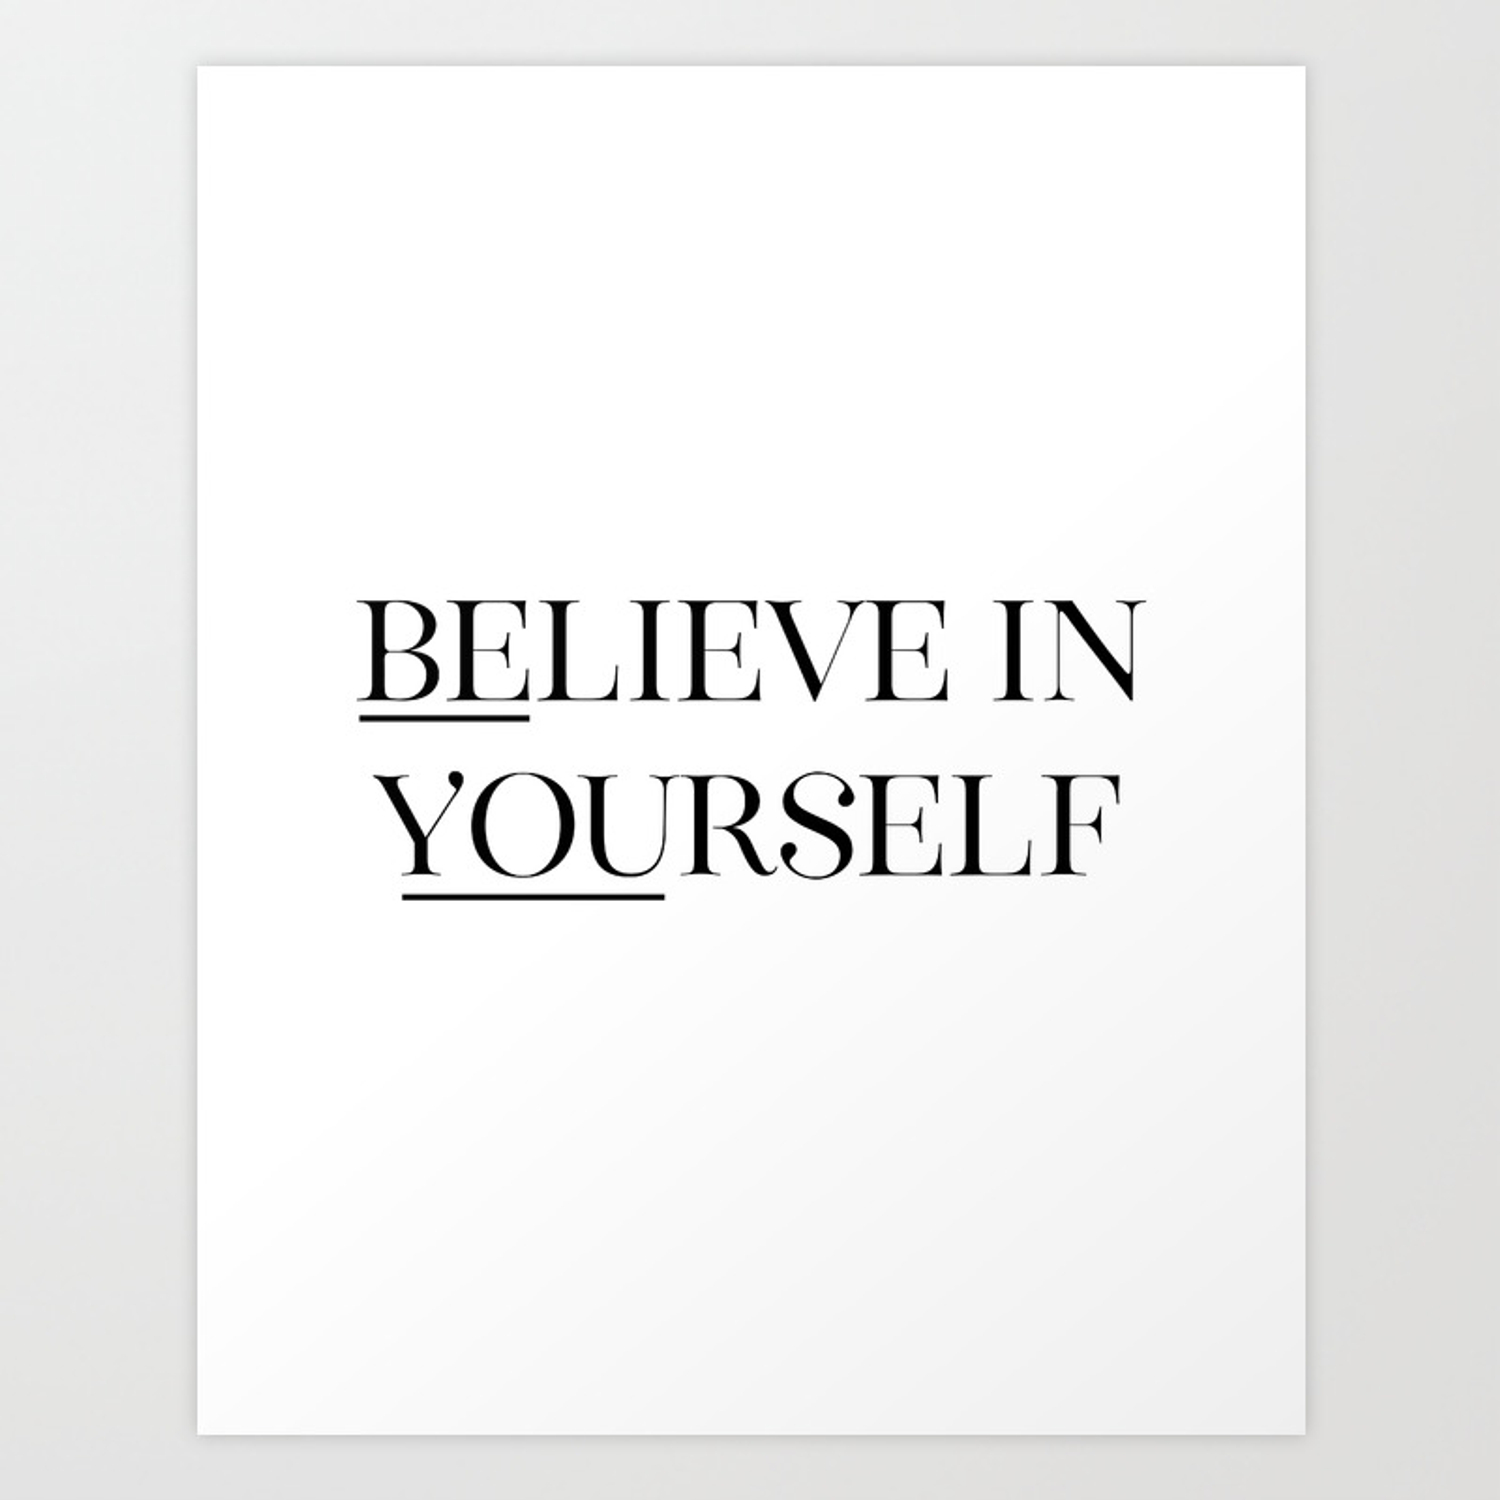 photograph about Printable Quotes Black and White referred to as Consider In just Your self, Black And White, Printable Quotation, Wall Artwork, Printable Quotation Artwork Print